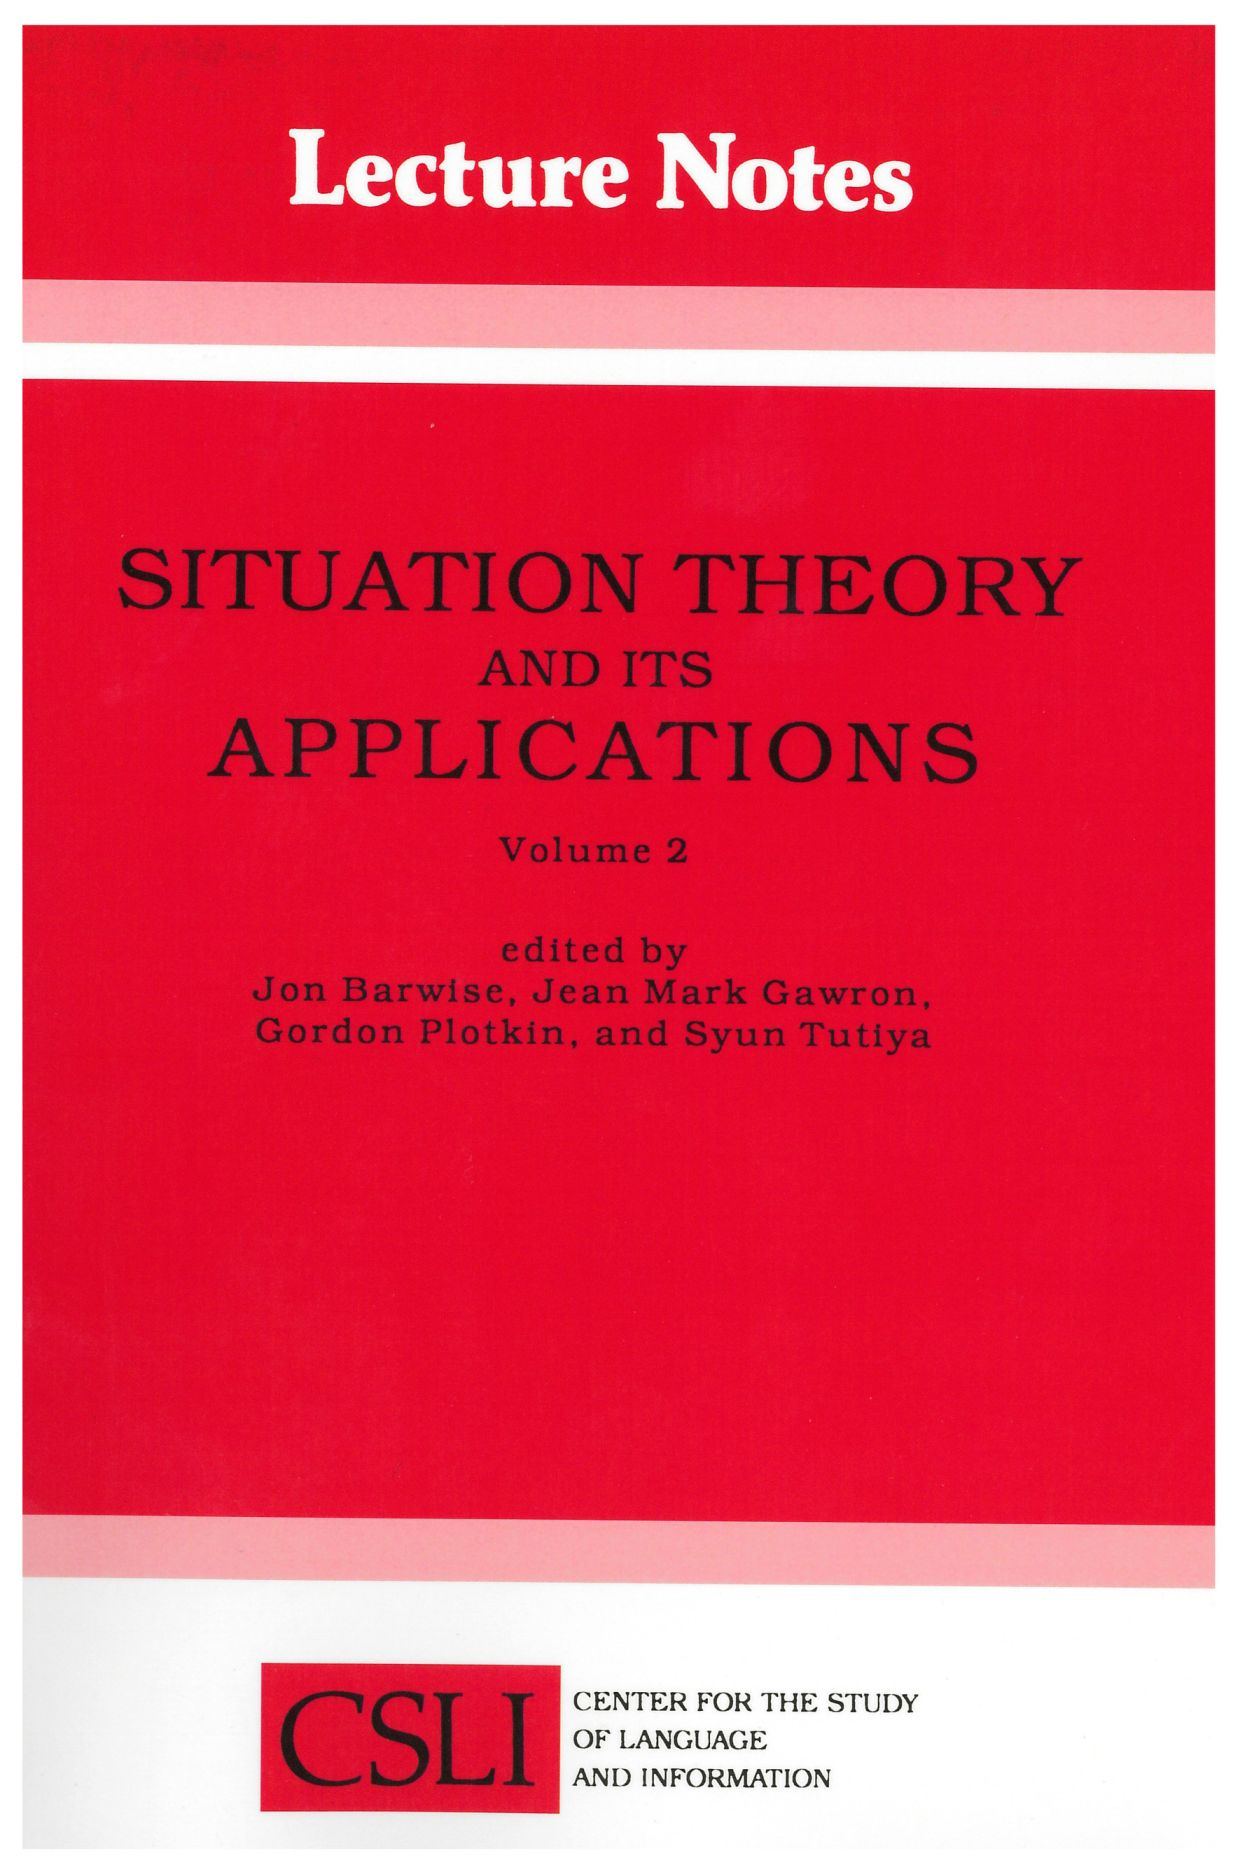 Situation Theory and Its Applications, Volume 2